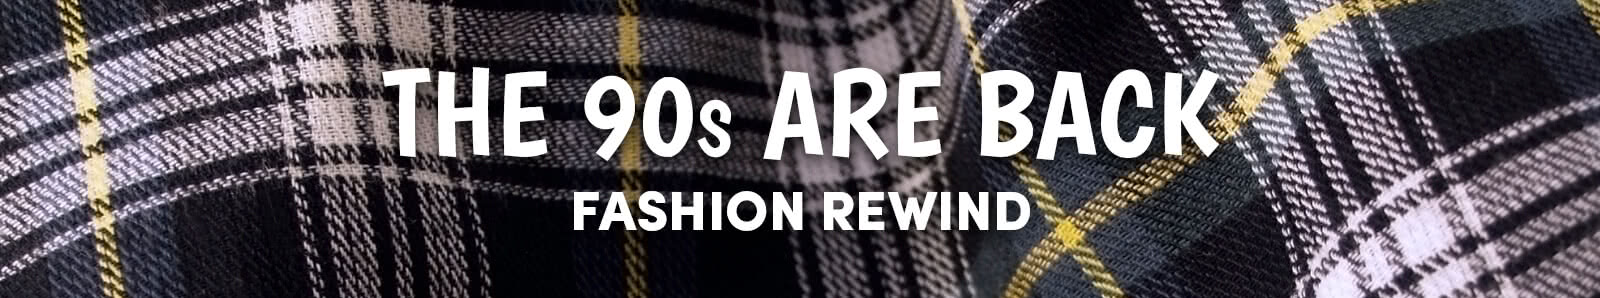 The 90s Are Back - Fashion Rewind